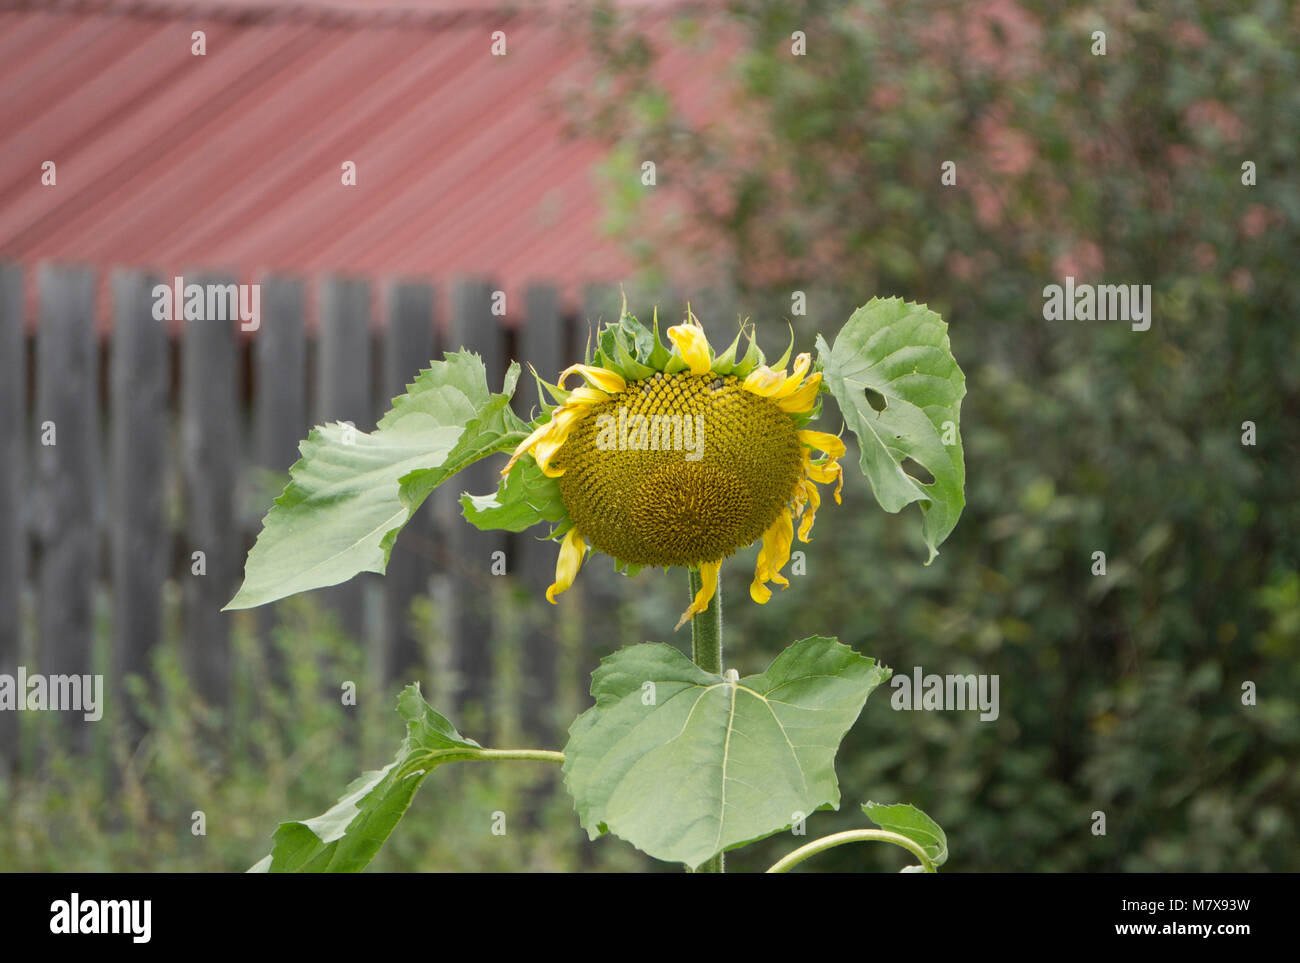 the sunflower cold autumn - Stock Image